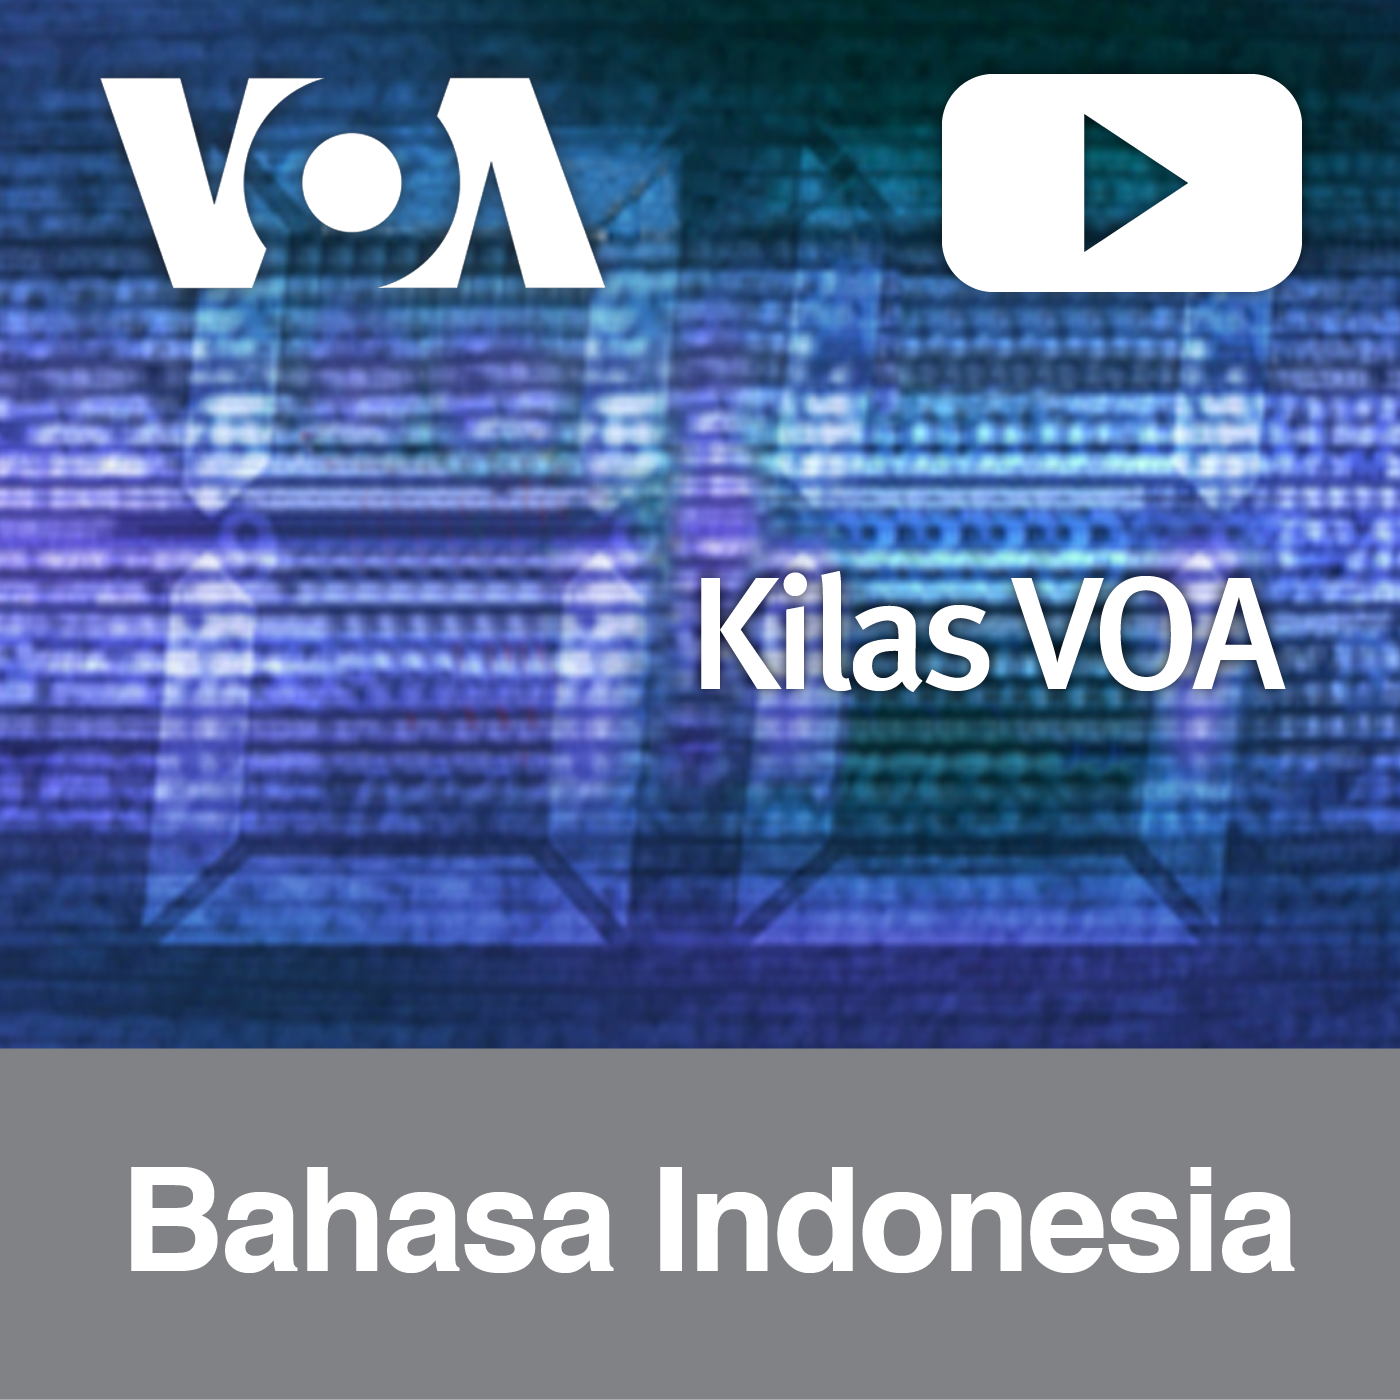 Kilas VOA - Voice of America | Bahasa Indonesia